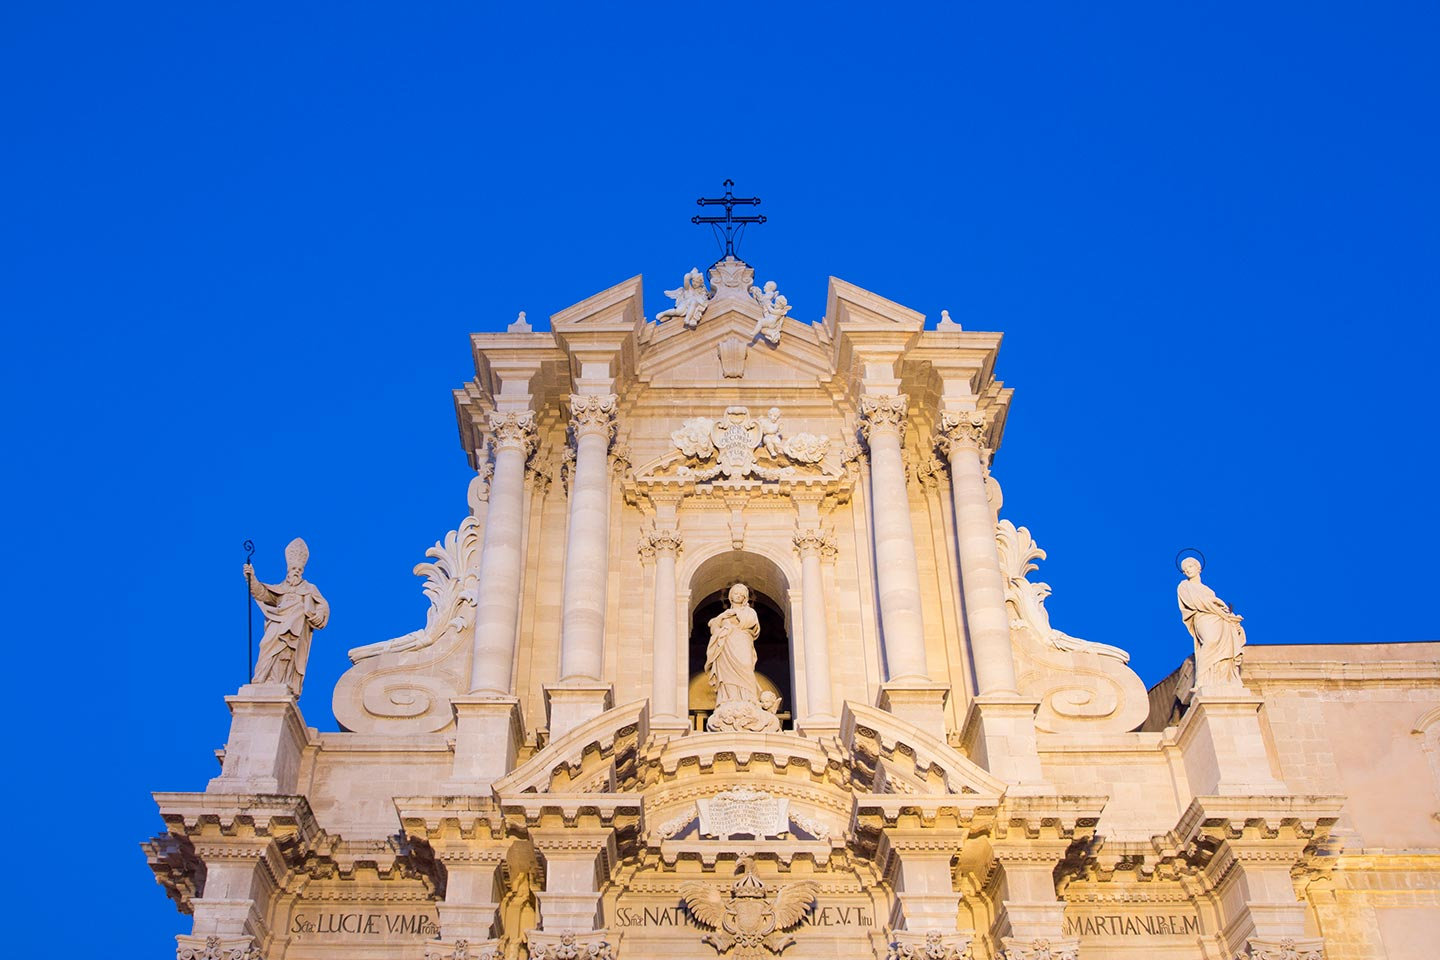 Image of the duomo or cathedral in Ortigia, Syracuse, Sicily